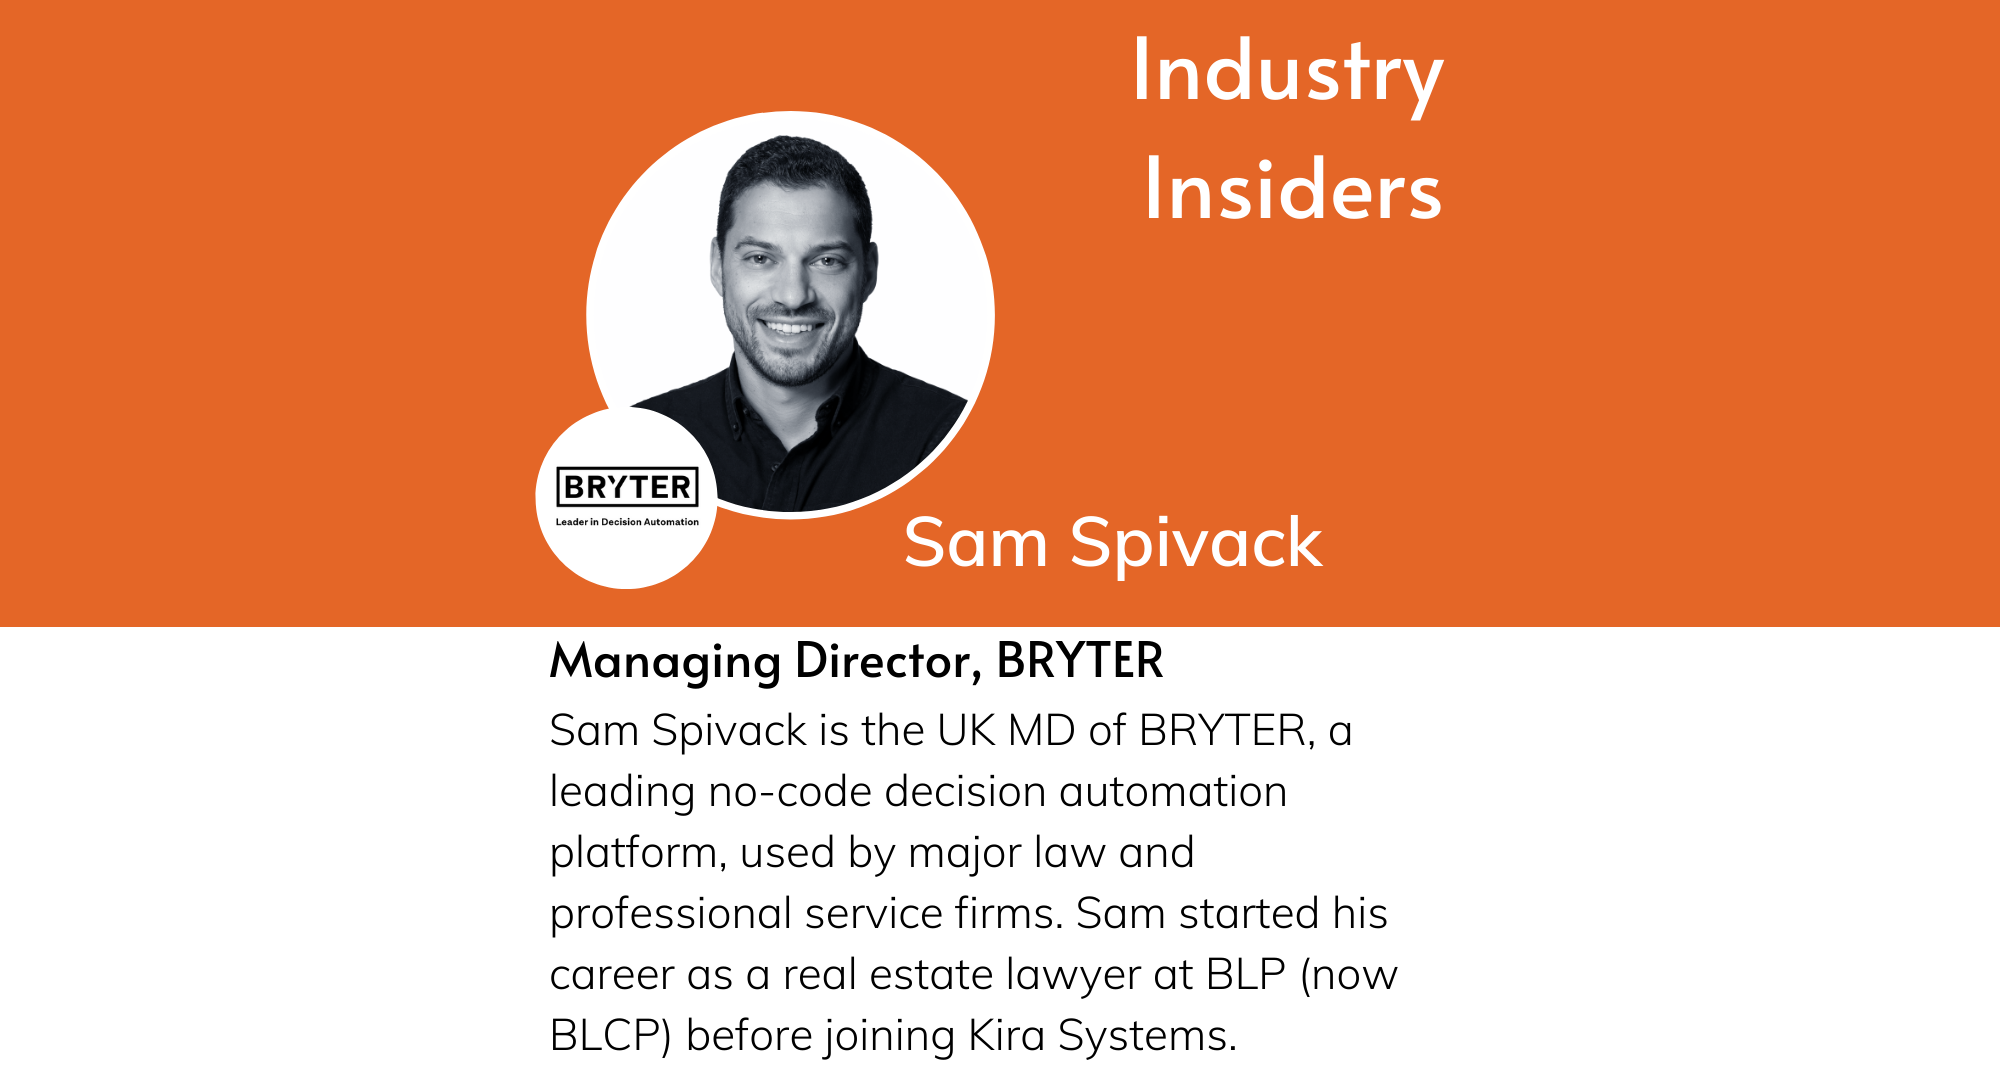 Industry Insiders - Life at a LawTech Vendor